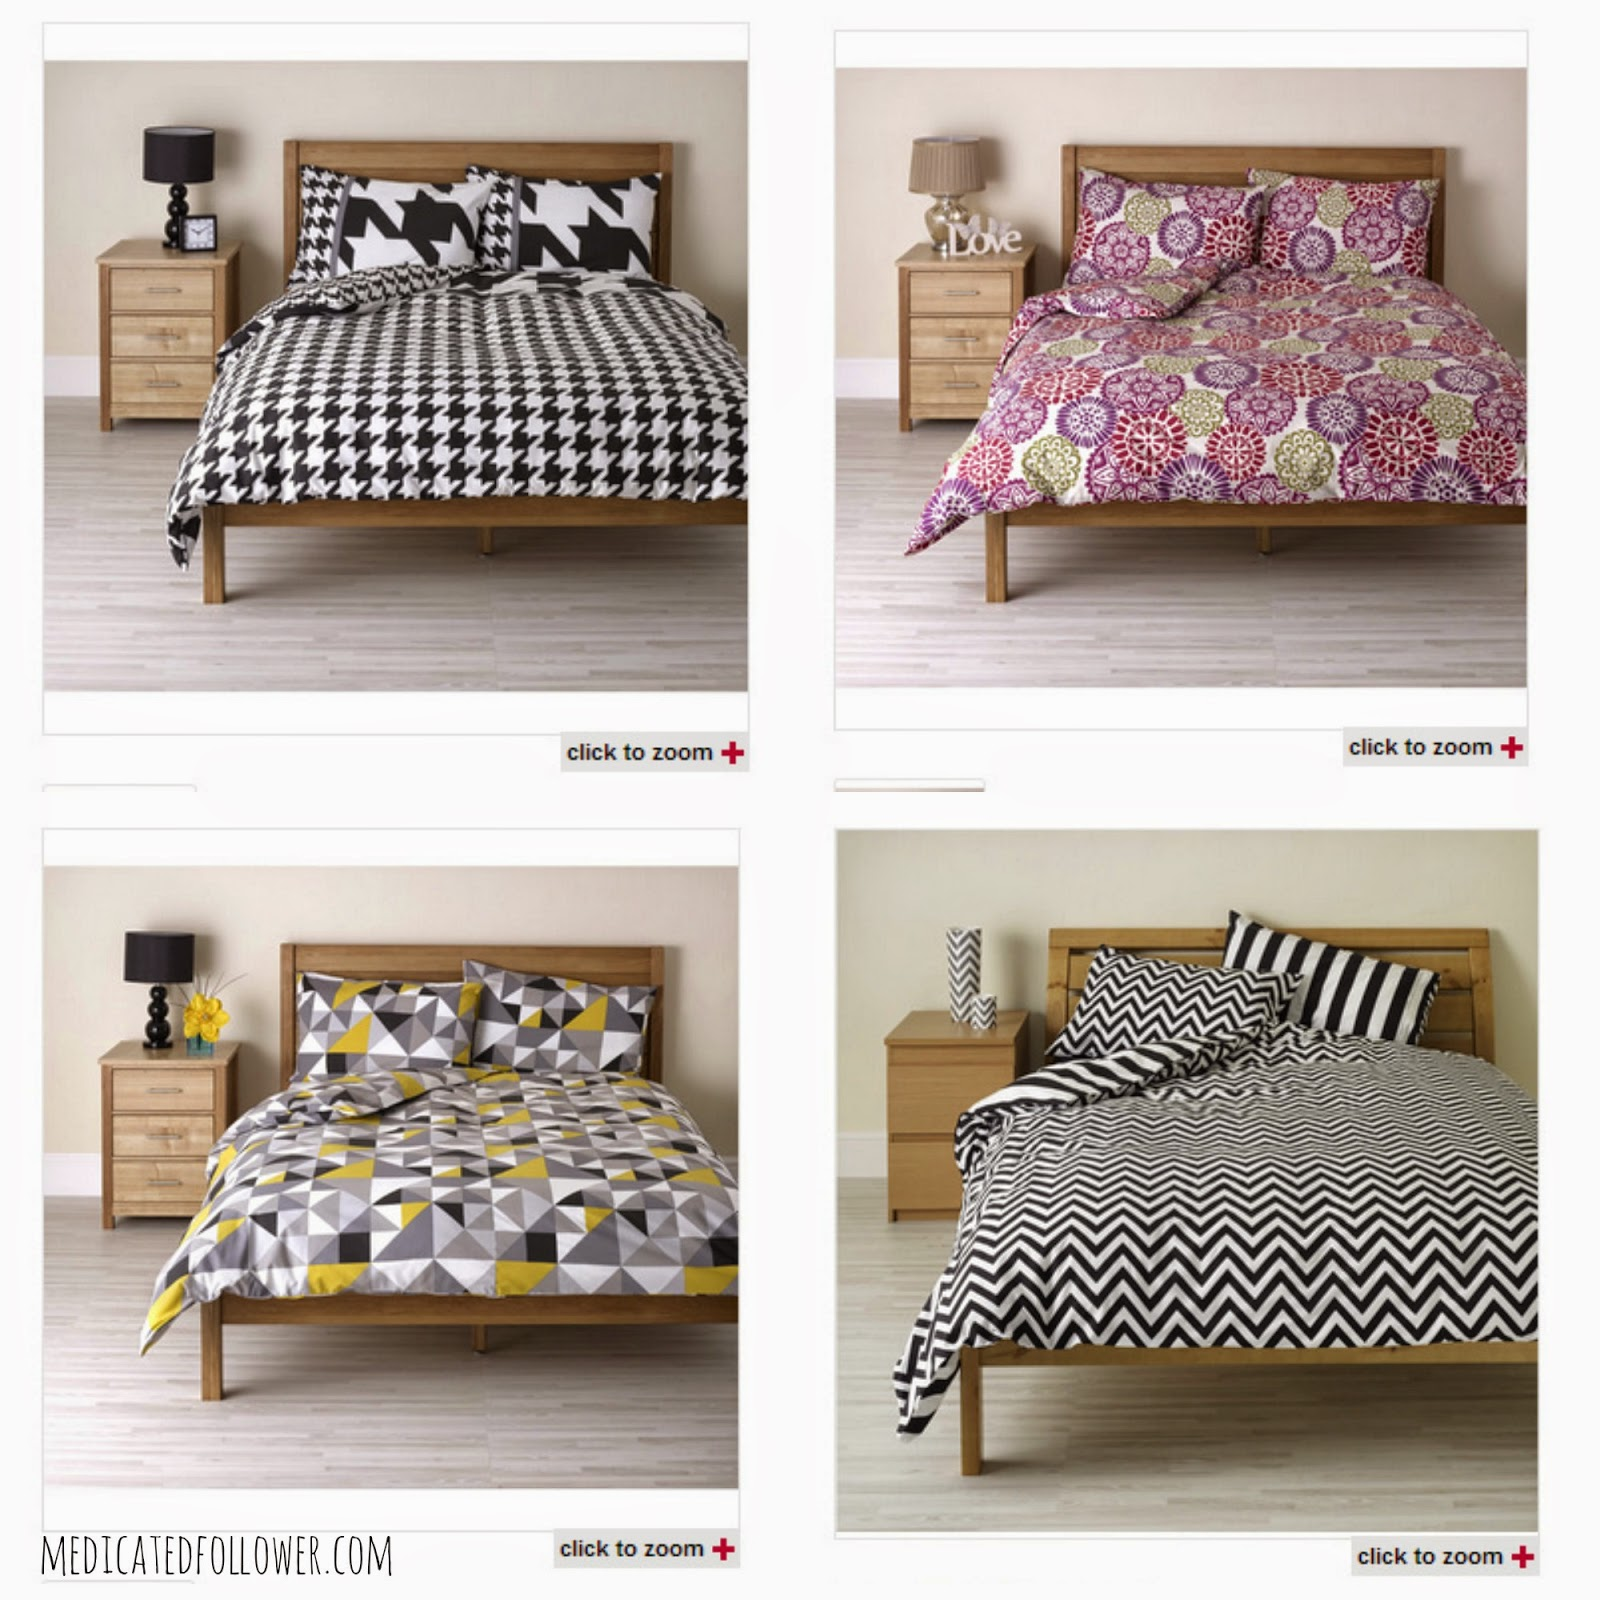 Wilko Wilkinsons bedding, duvet covers, Medicated Follower of Fashion, Monochrome, Geometric